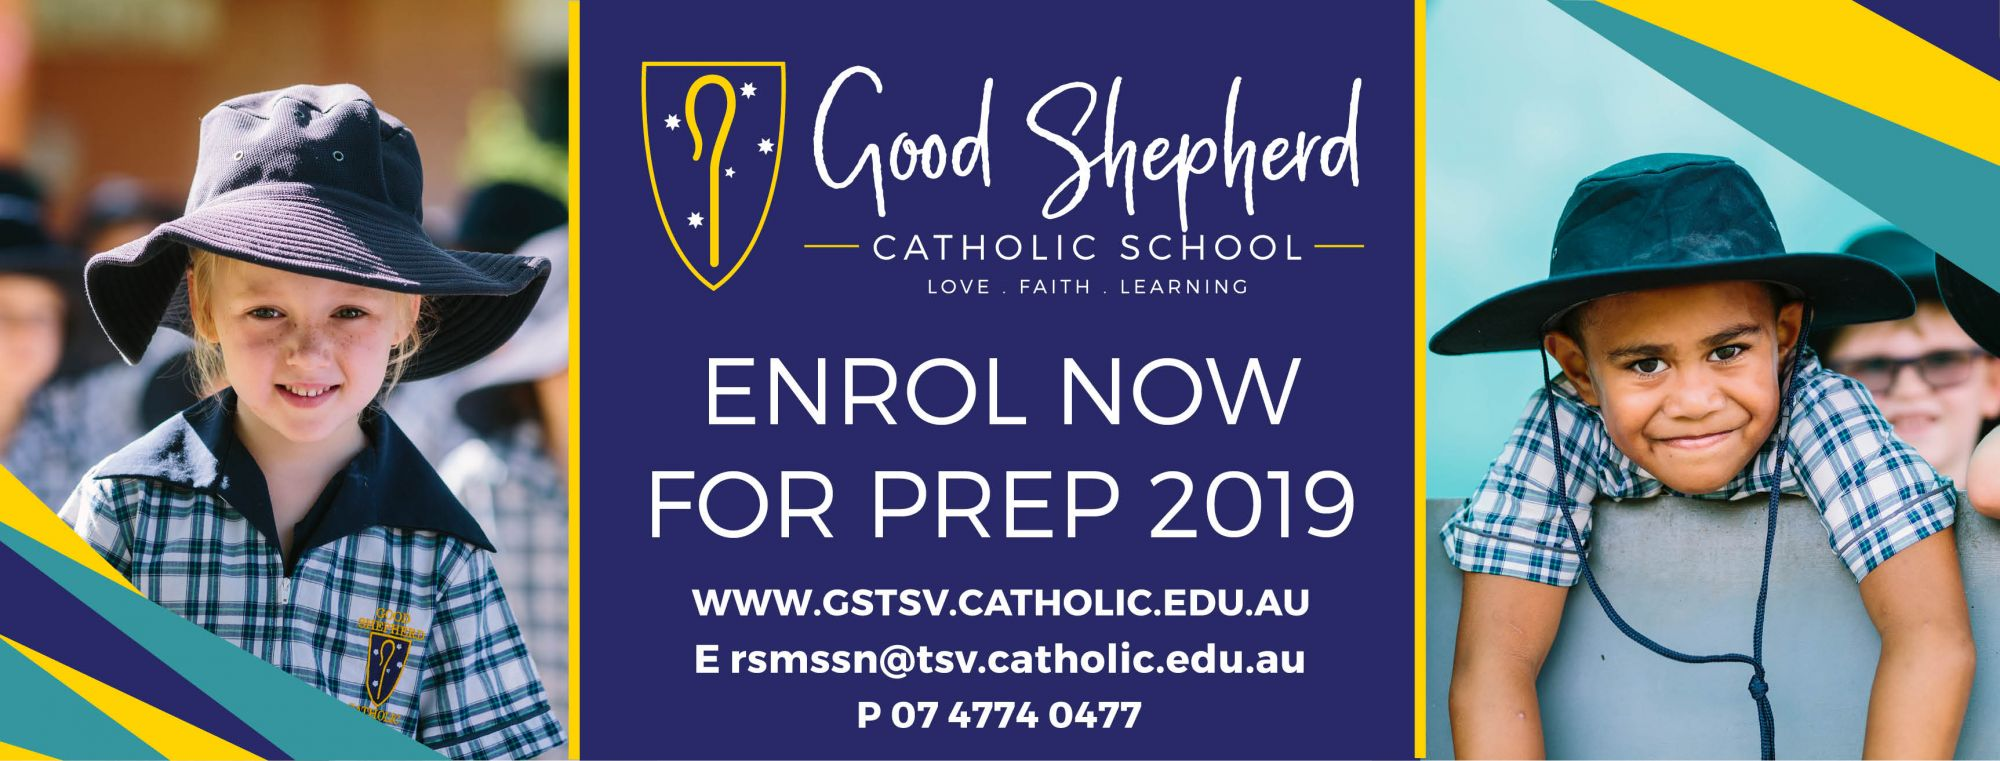 Enrol Now for Prep 2019